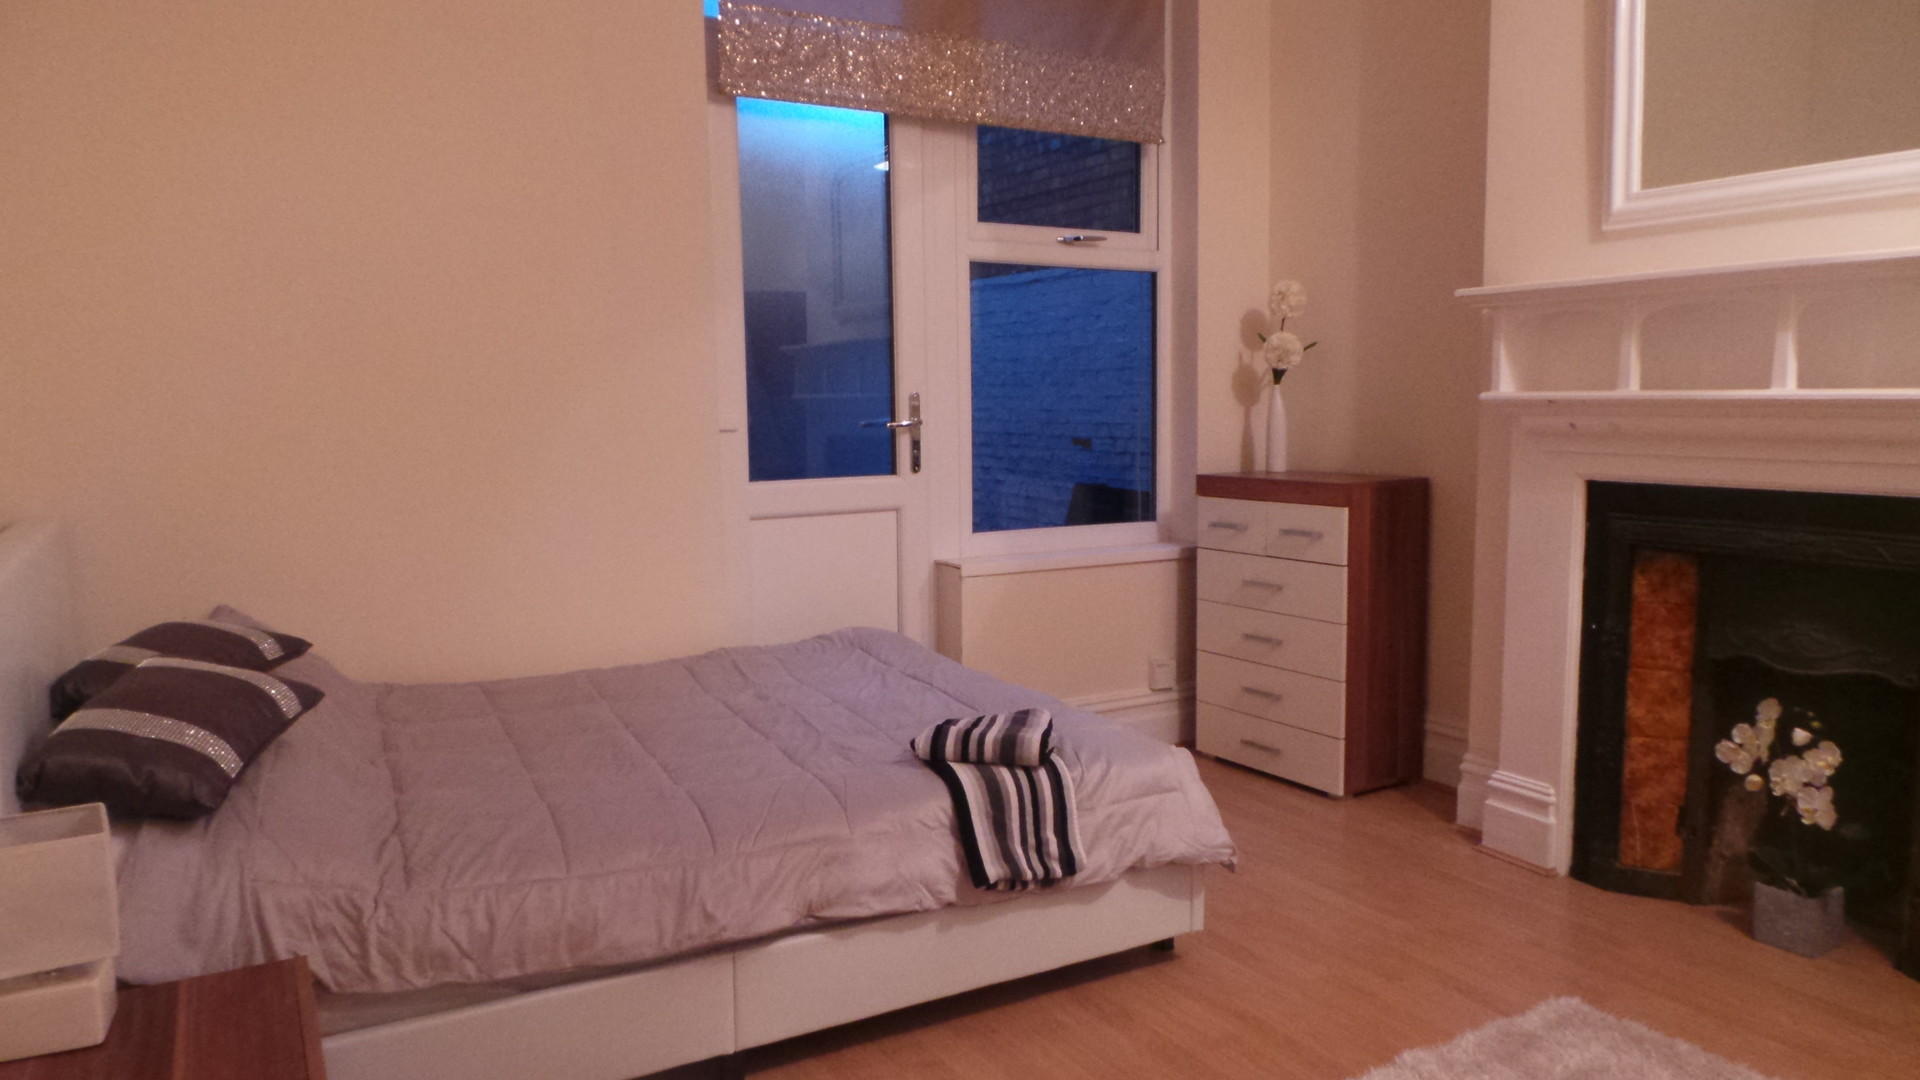 DOUBLE ROOM AVAILABLE FOR RENT - Deposit £250